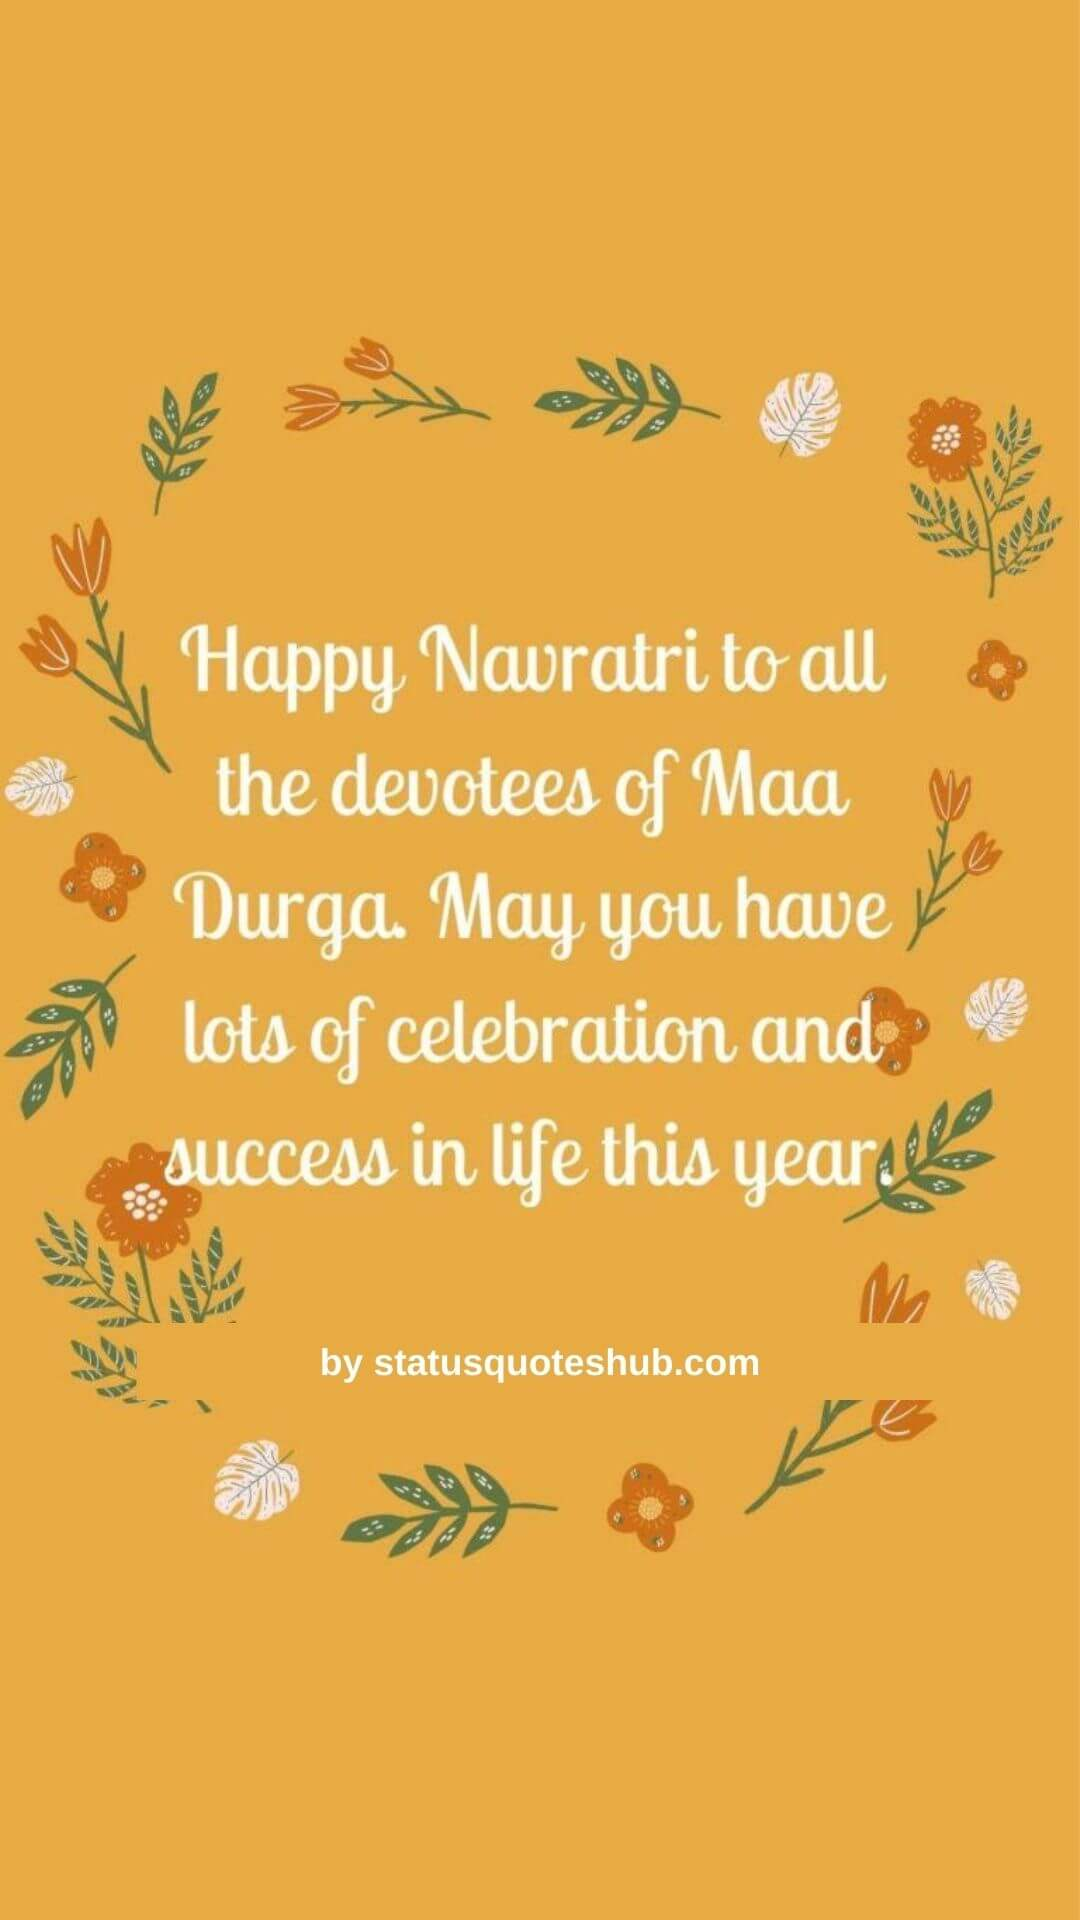 Navratri wishes and status